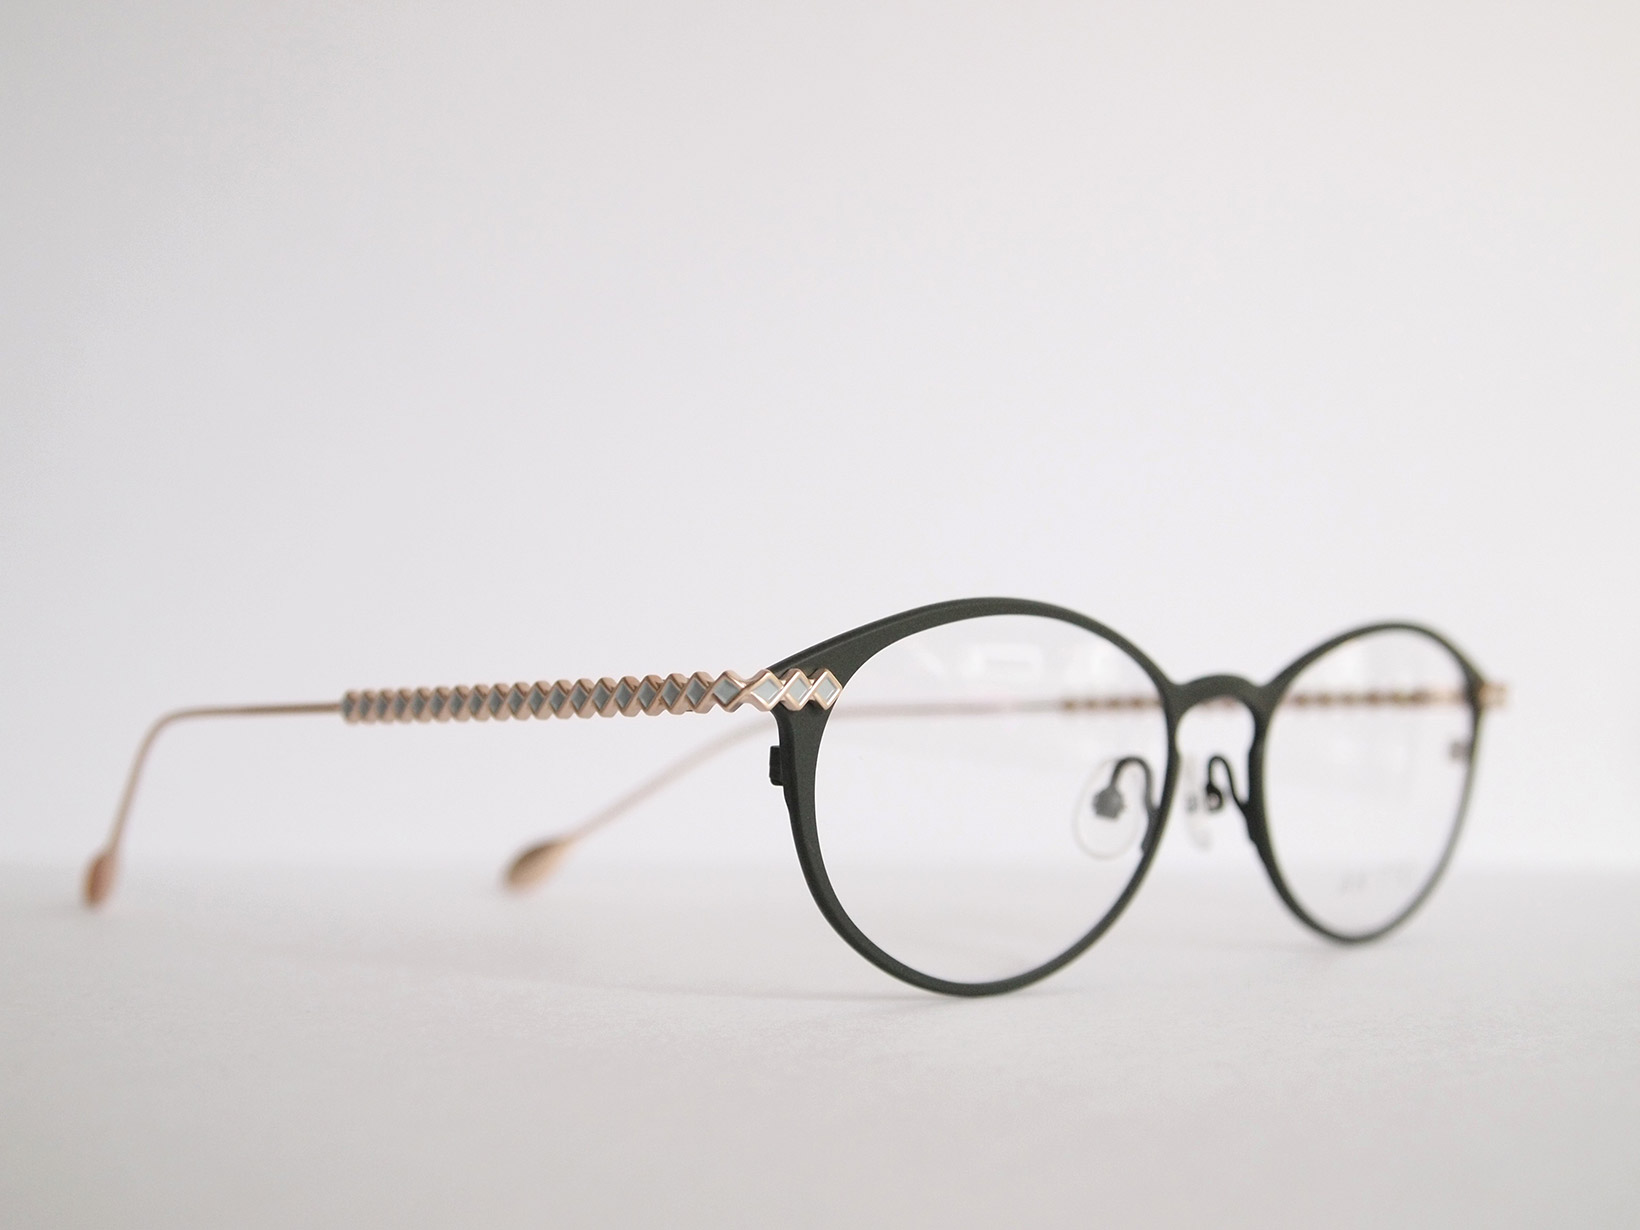 AKITTO 2020-3rd lin1 color:GR size:51□17 material:titanium price:¥44,500(+tax)